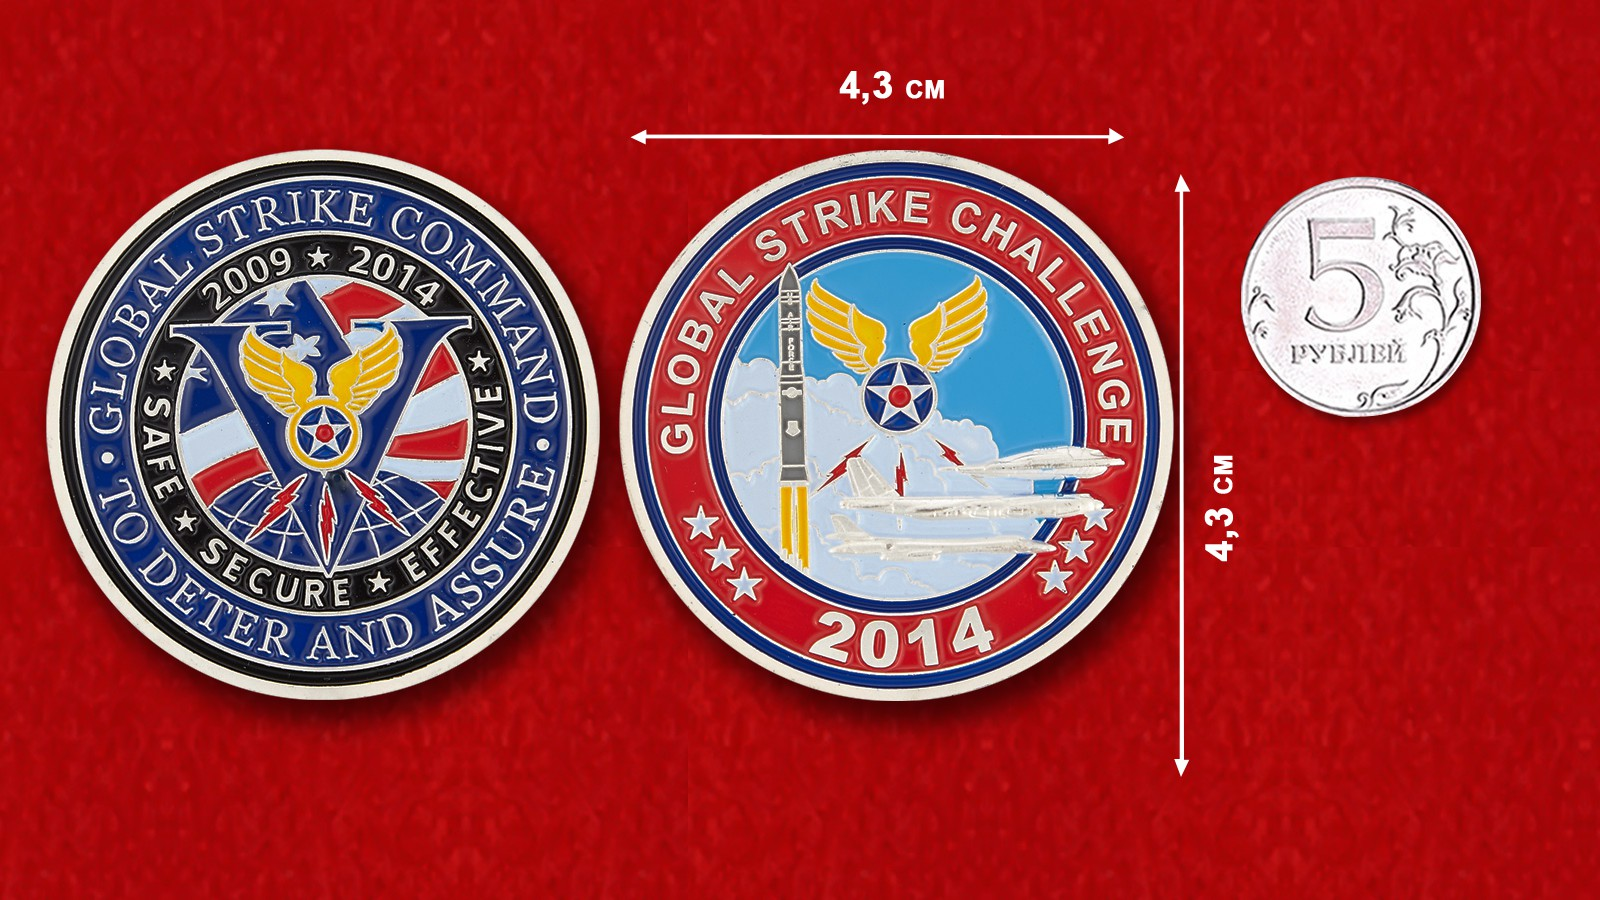 US Global Strike Command 2014 Challenge Coin